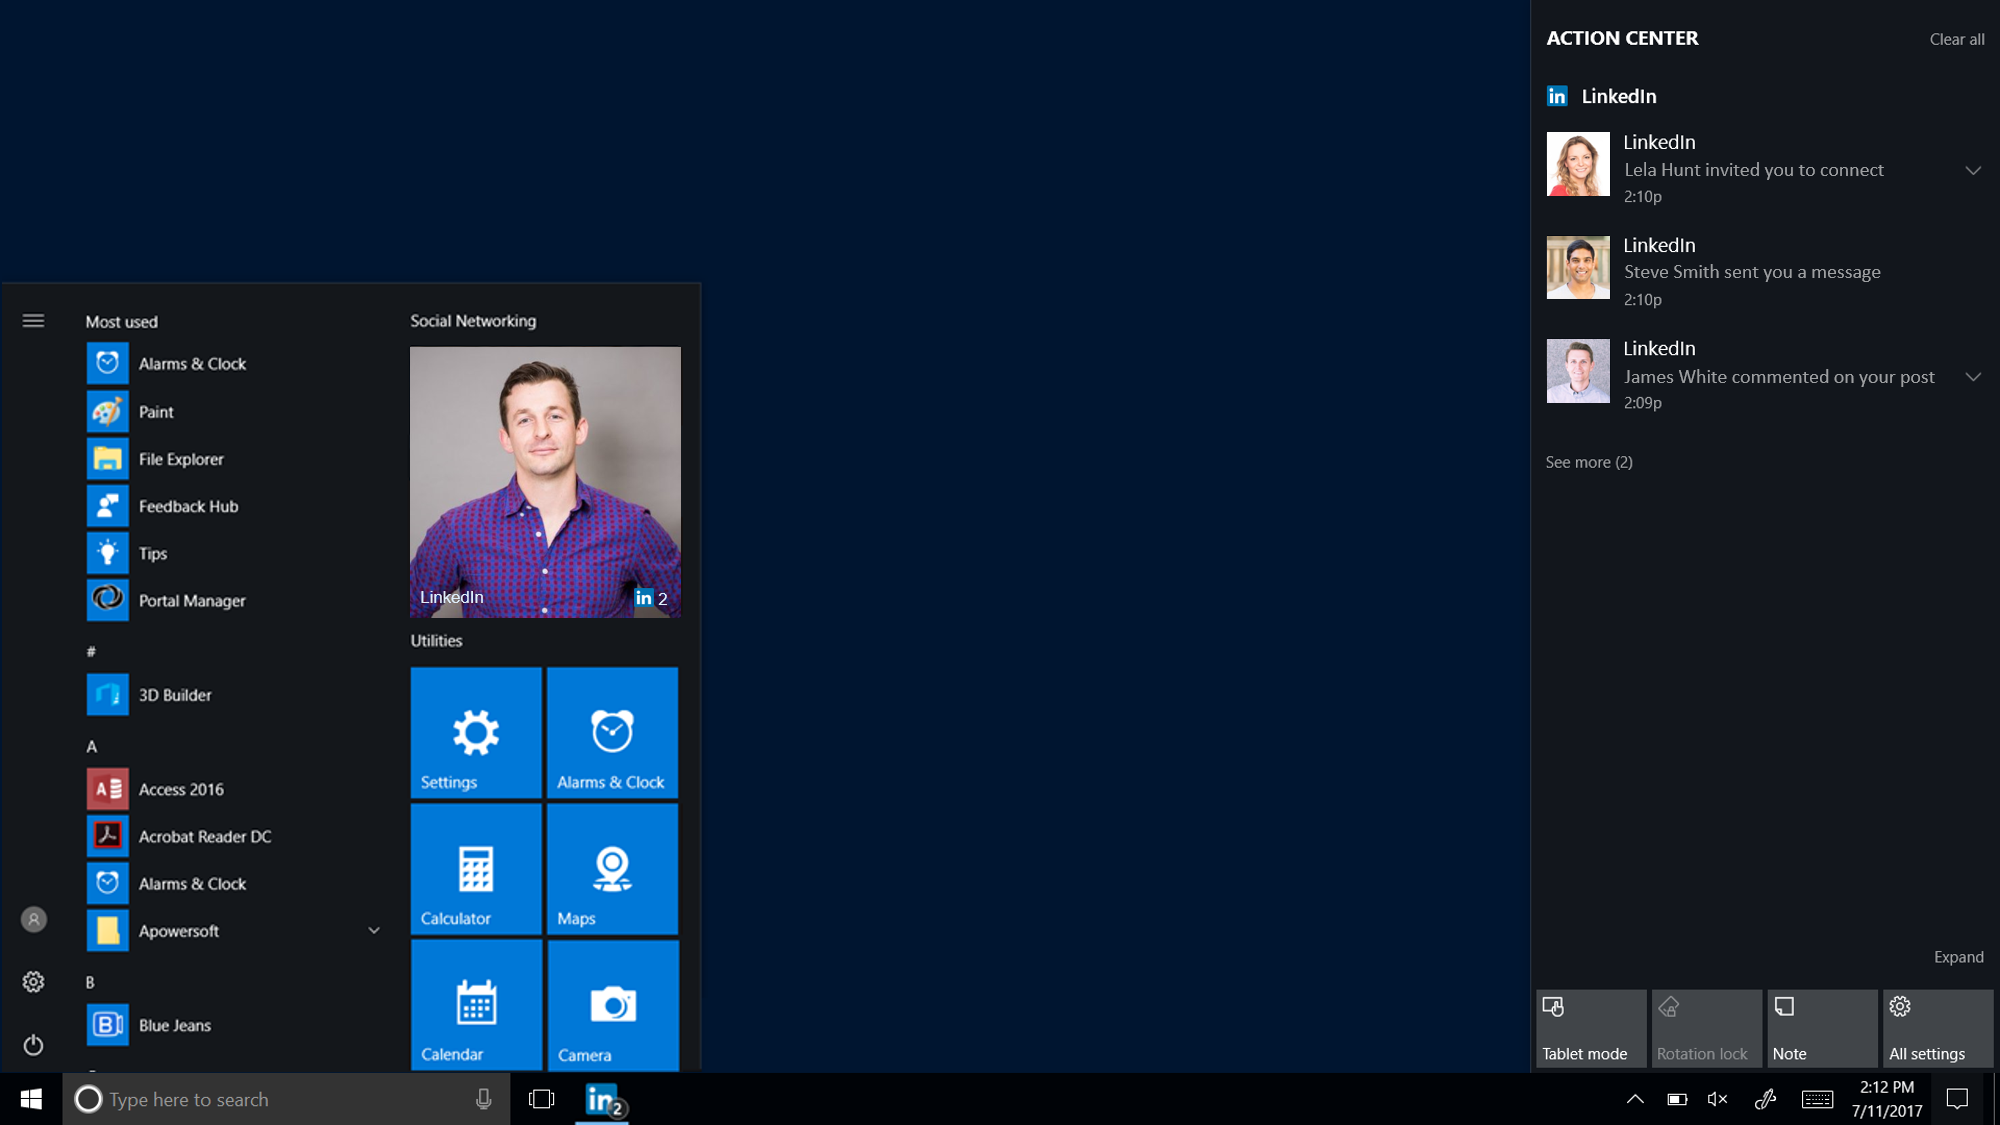 Microsoft Launches New LinkedIn App For Windows 10